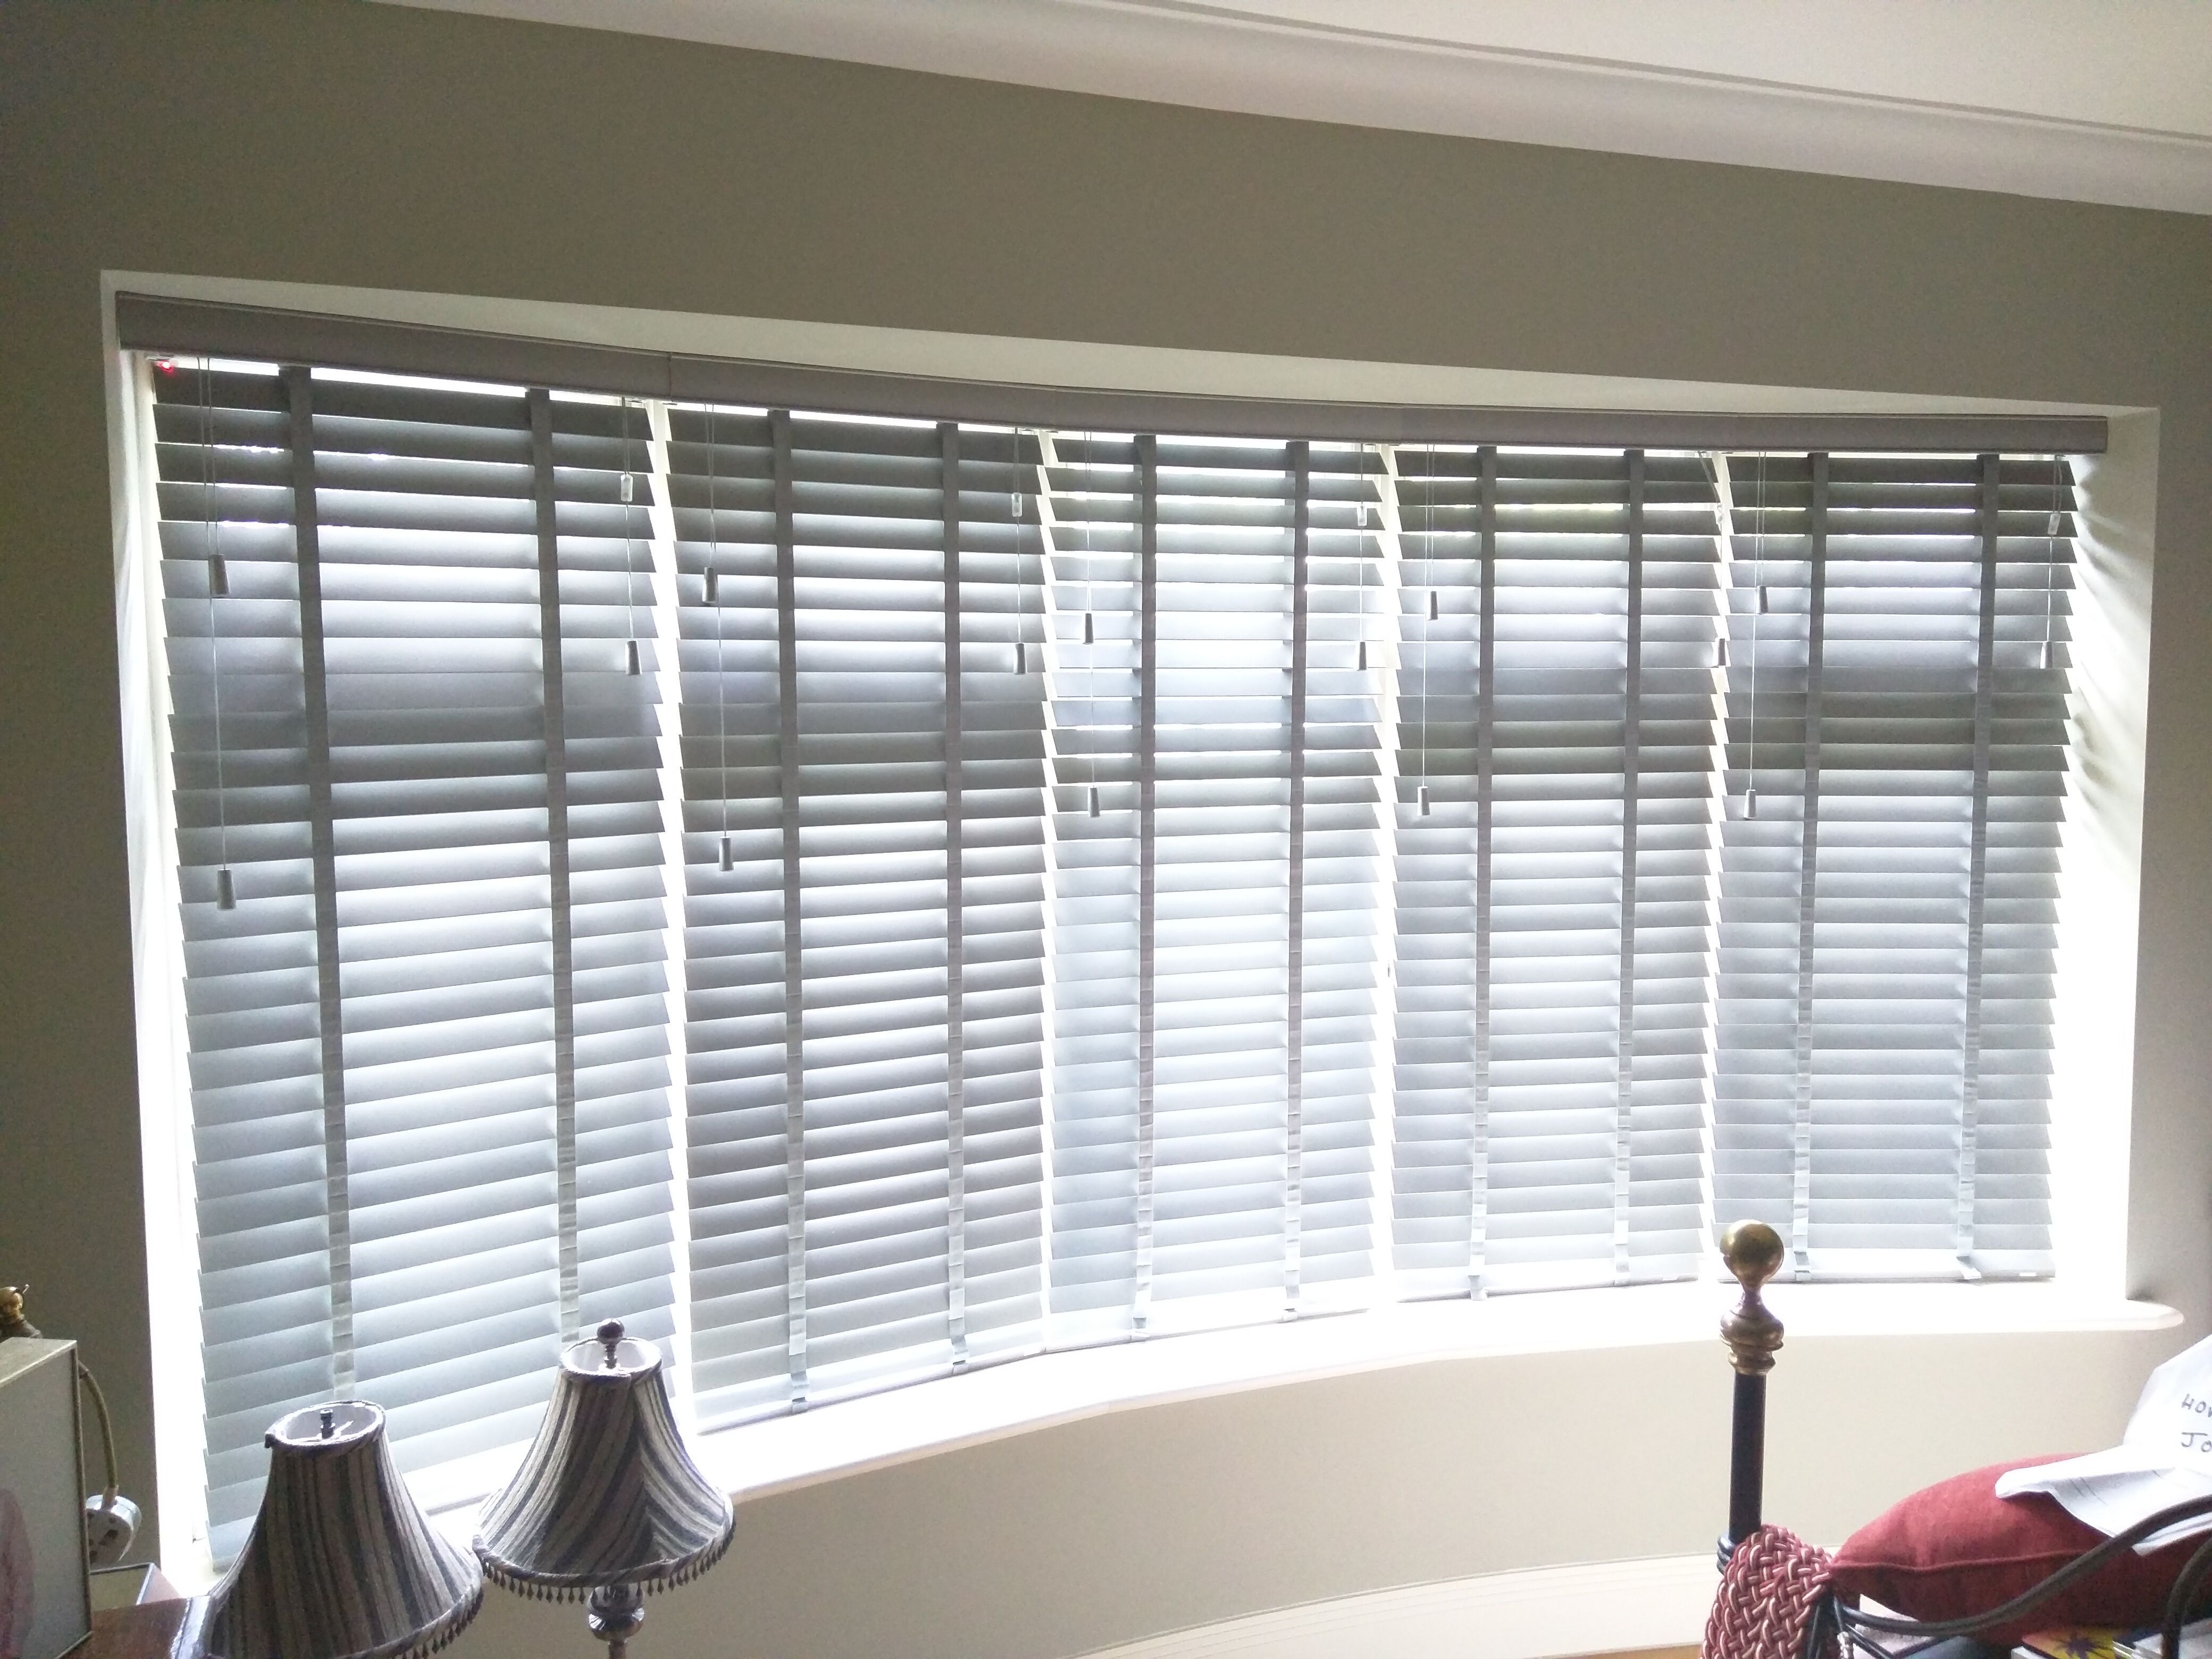 Pottery Wood Venetian Blinds Curved Window Enfield Blinds Wooden Blinds Blinds For Windows